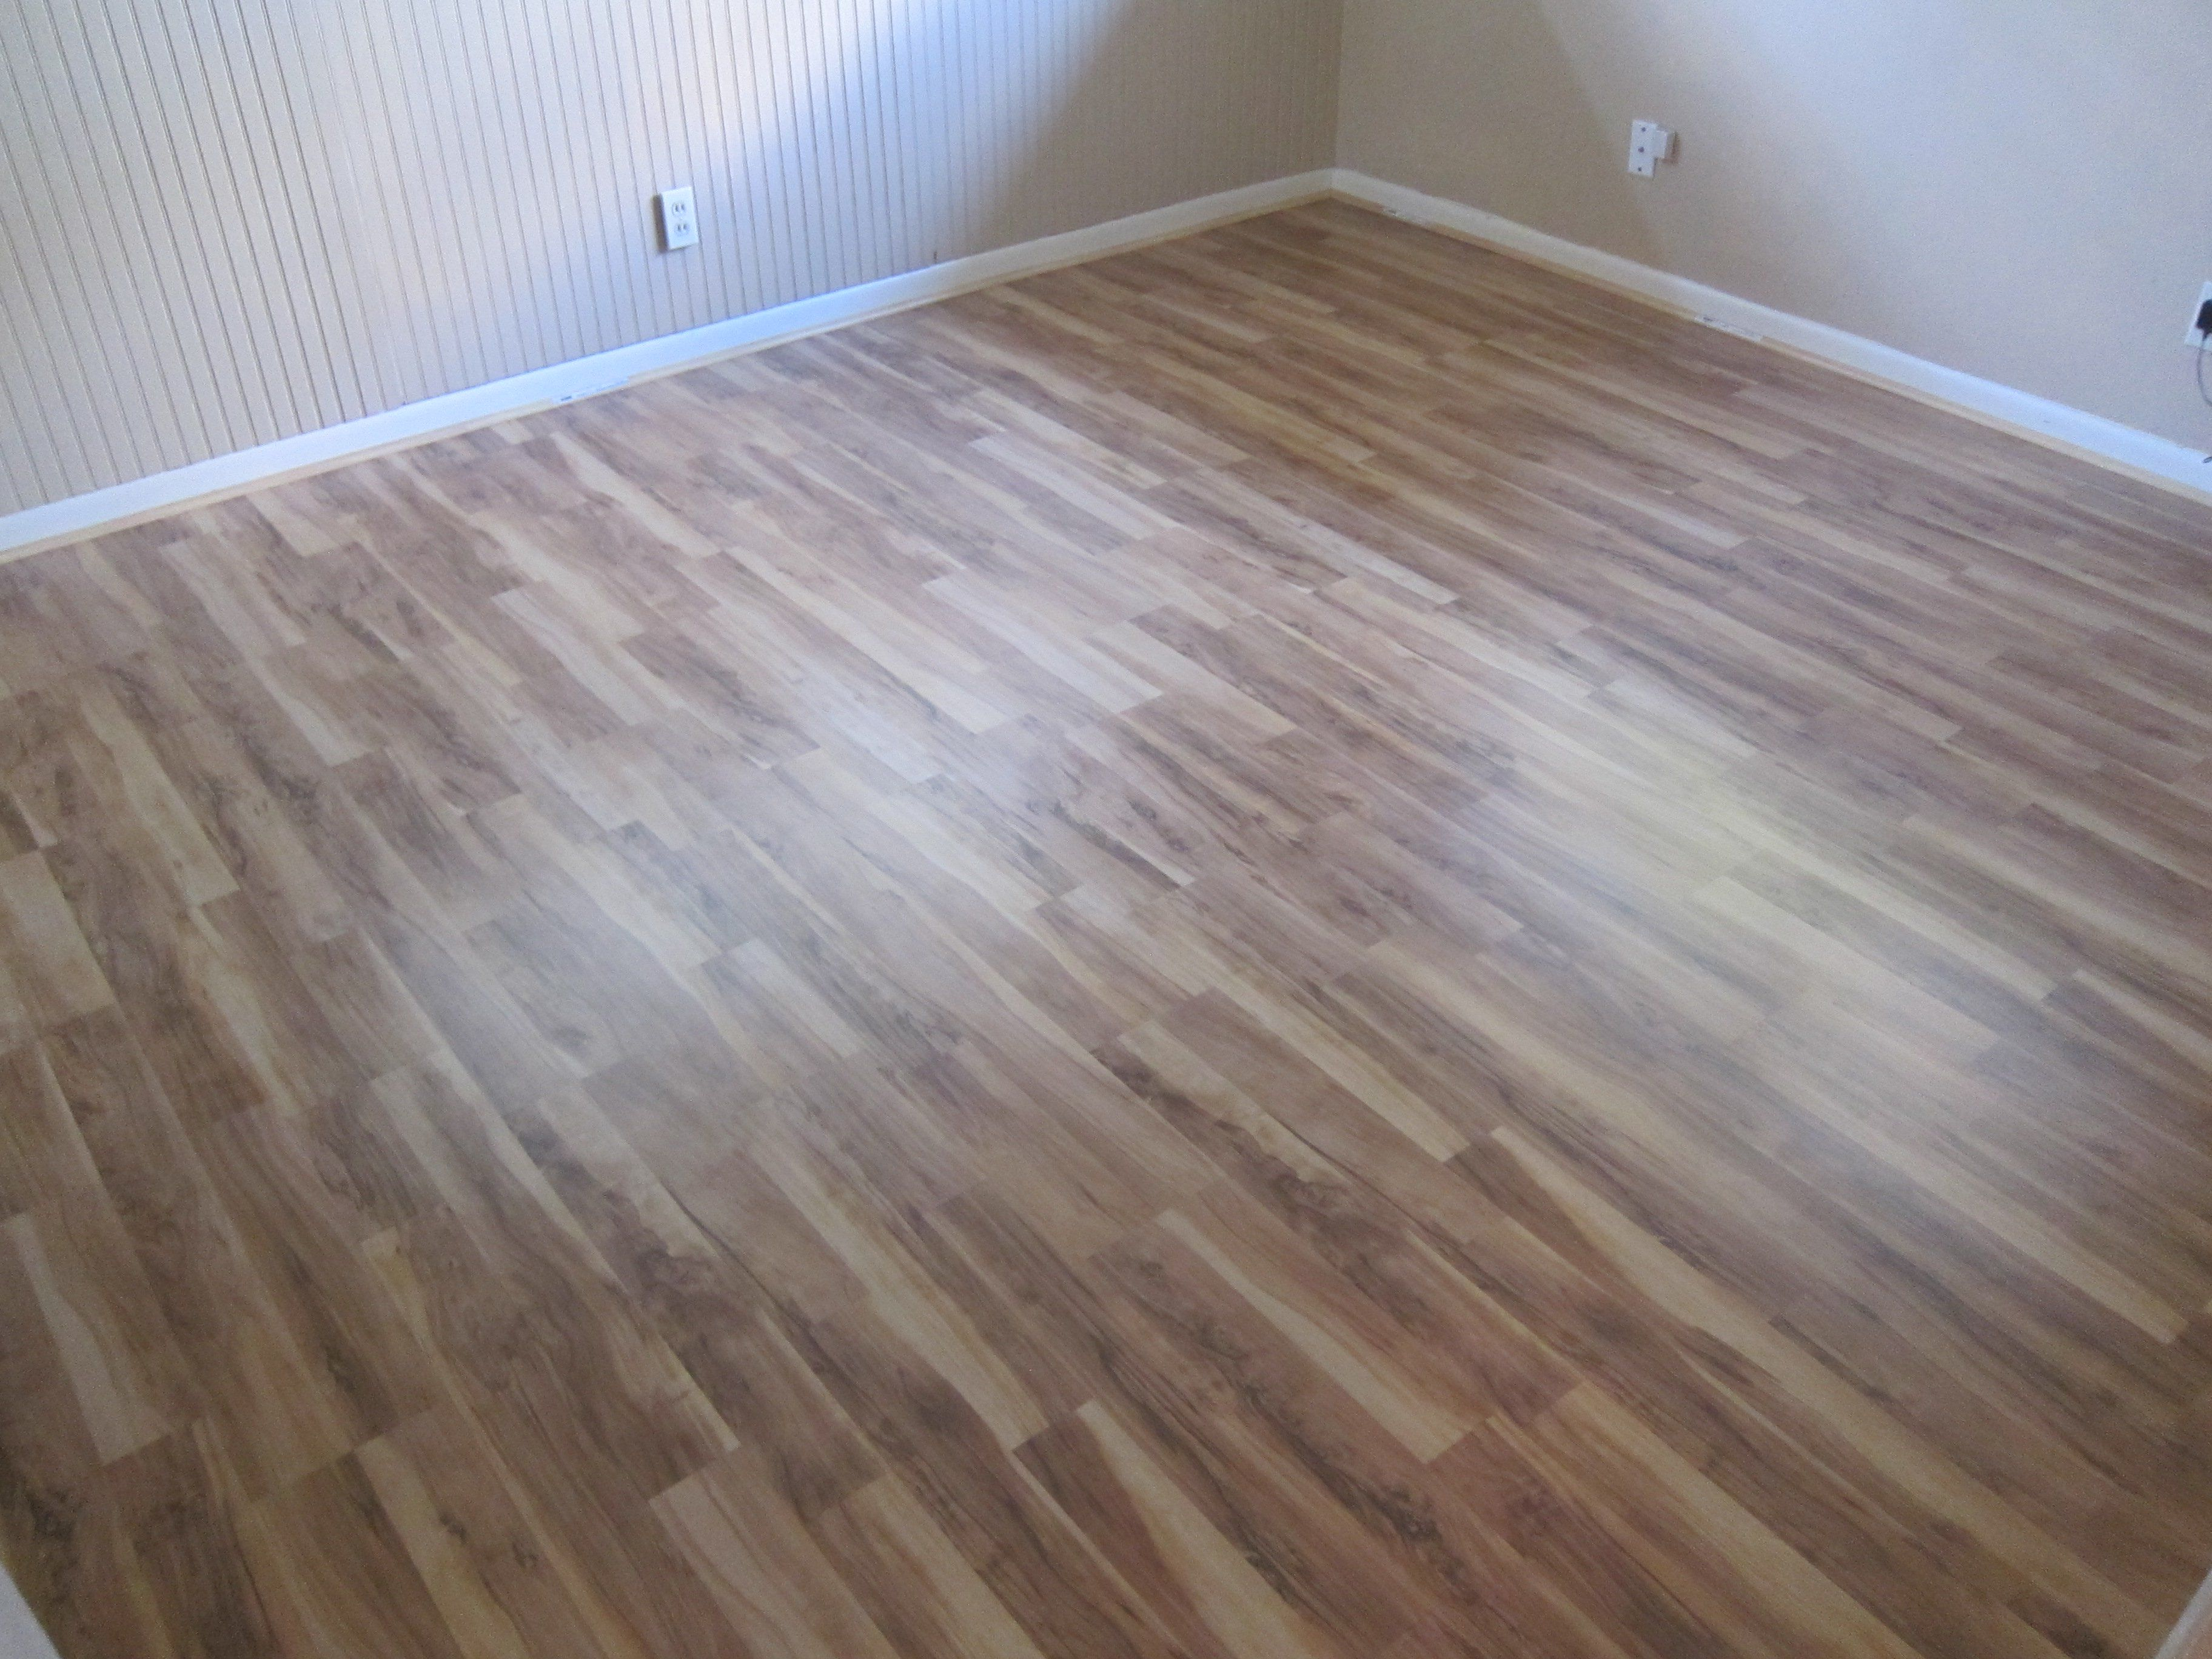 Glueless Laminate Flooring Benefits And Features In 2020